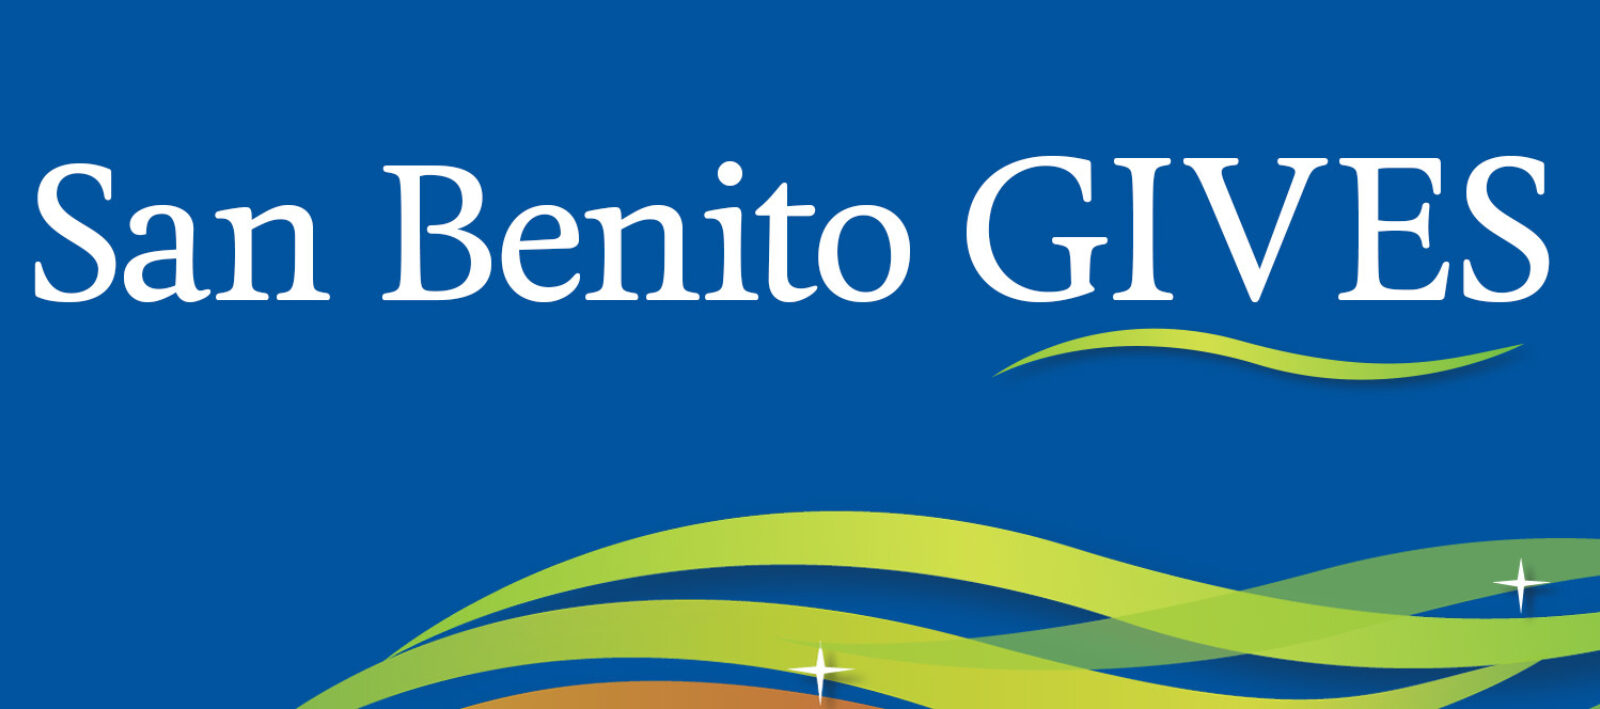 San Benito Gives - May 16, 2017